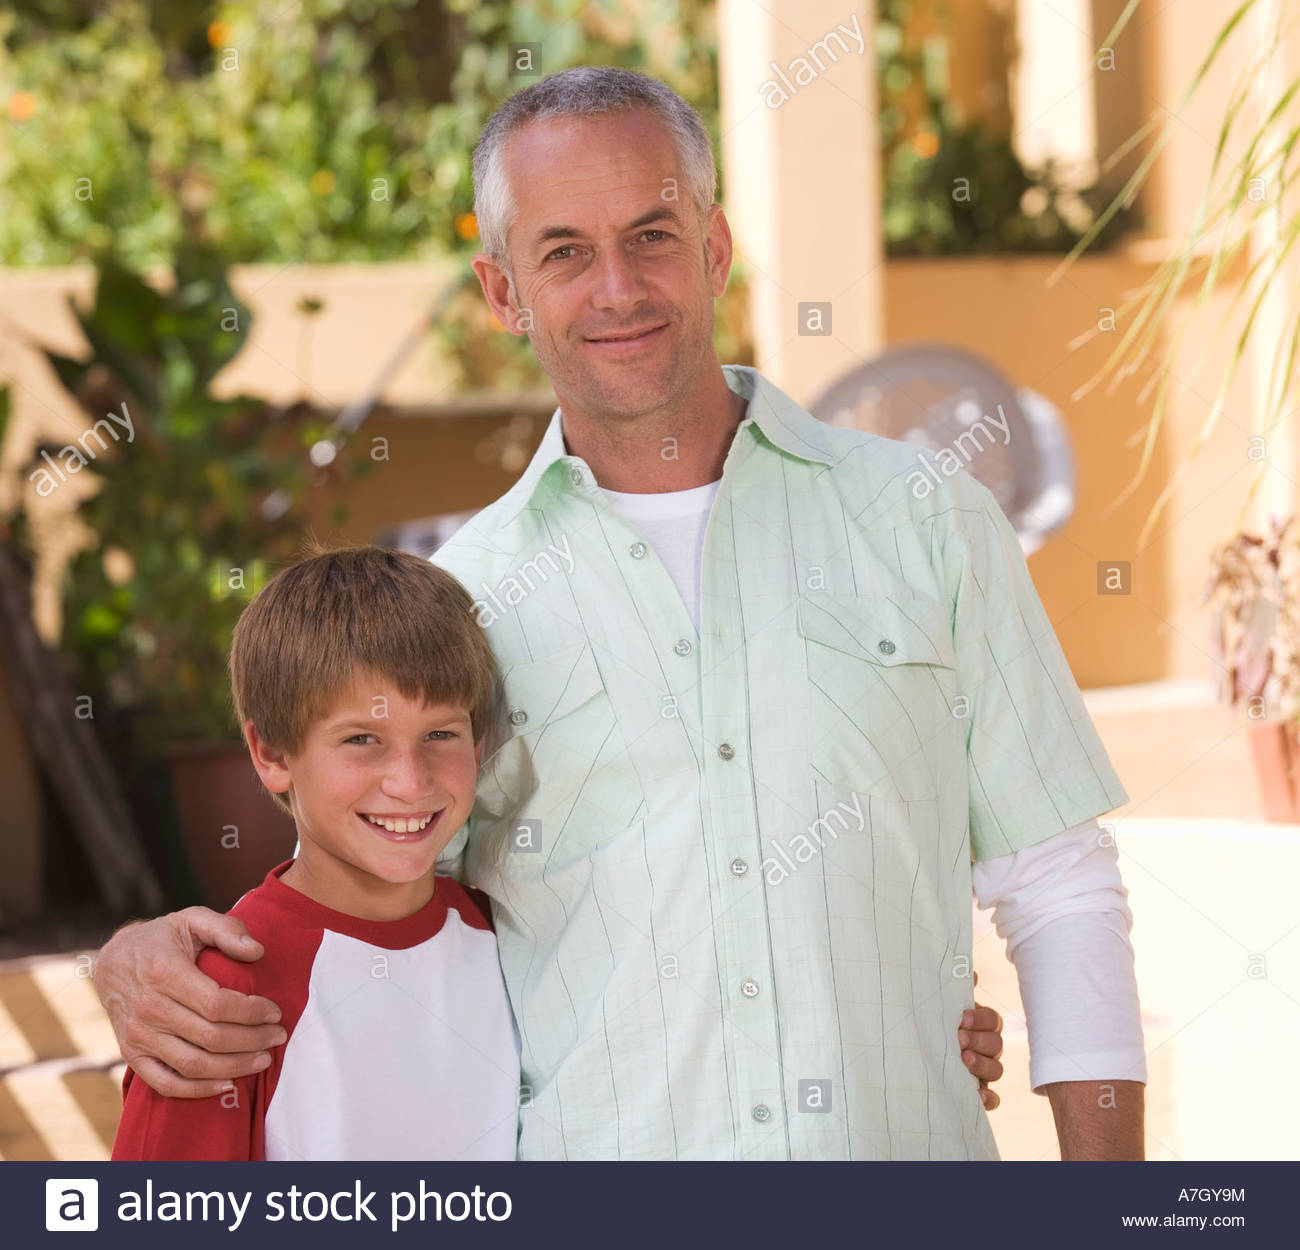 Portrait of a father with his young son - Stock Image